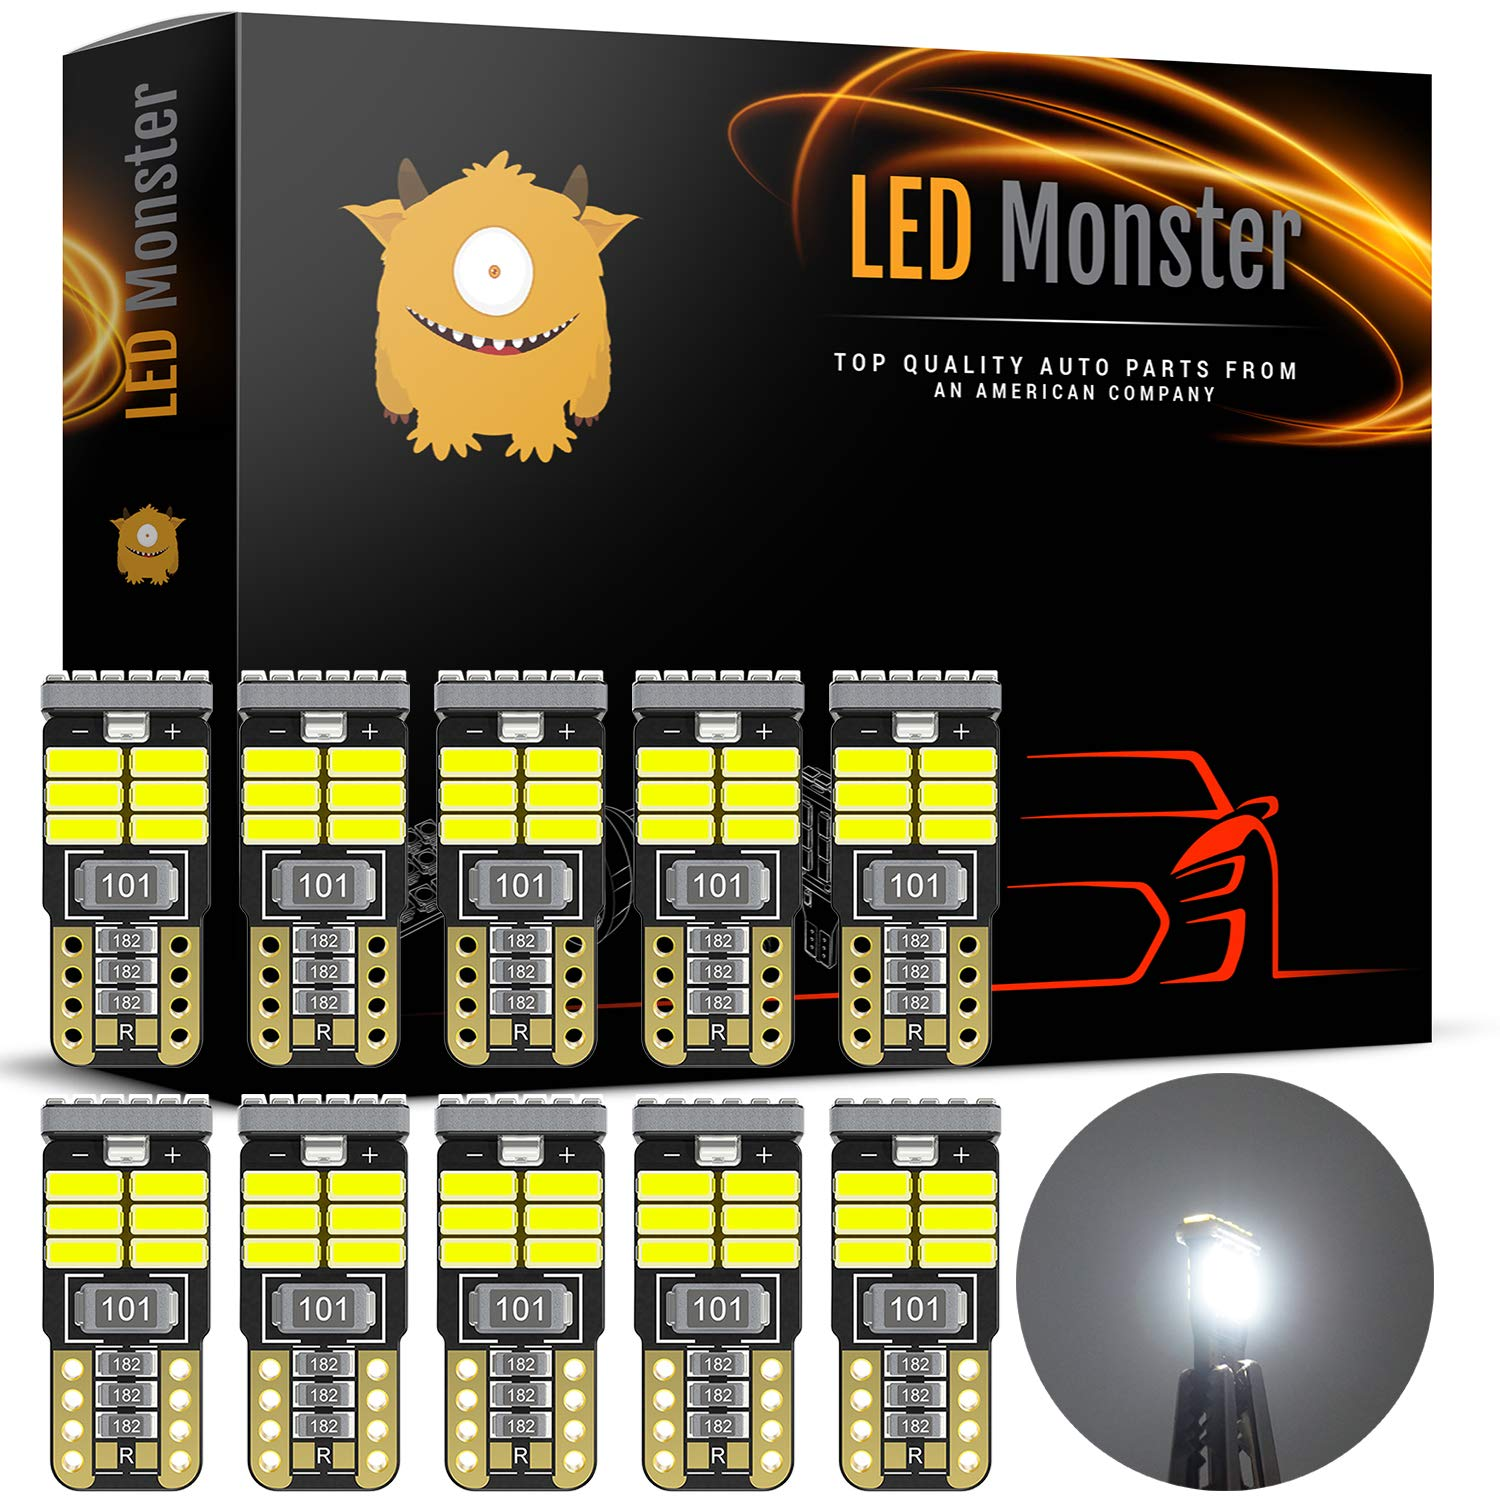 LED Monster 10pcs T10 Wedge Best Value Super Bright High Power 3014 18-SMD 194 168 2825 W5W White LED Bulb Lamp for Car Truck Interior Dome Map Door Courtesy License Plate Lights by LED Monster